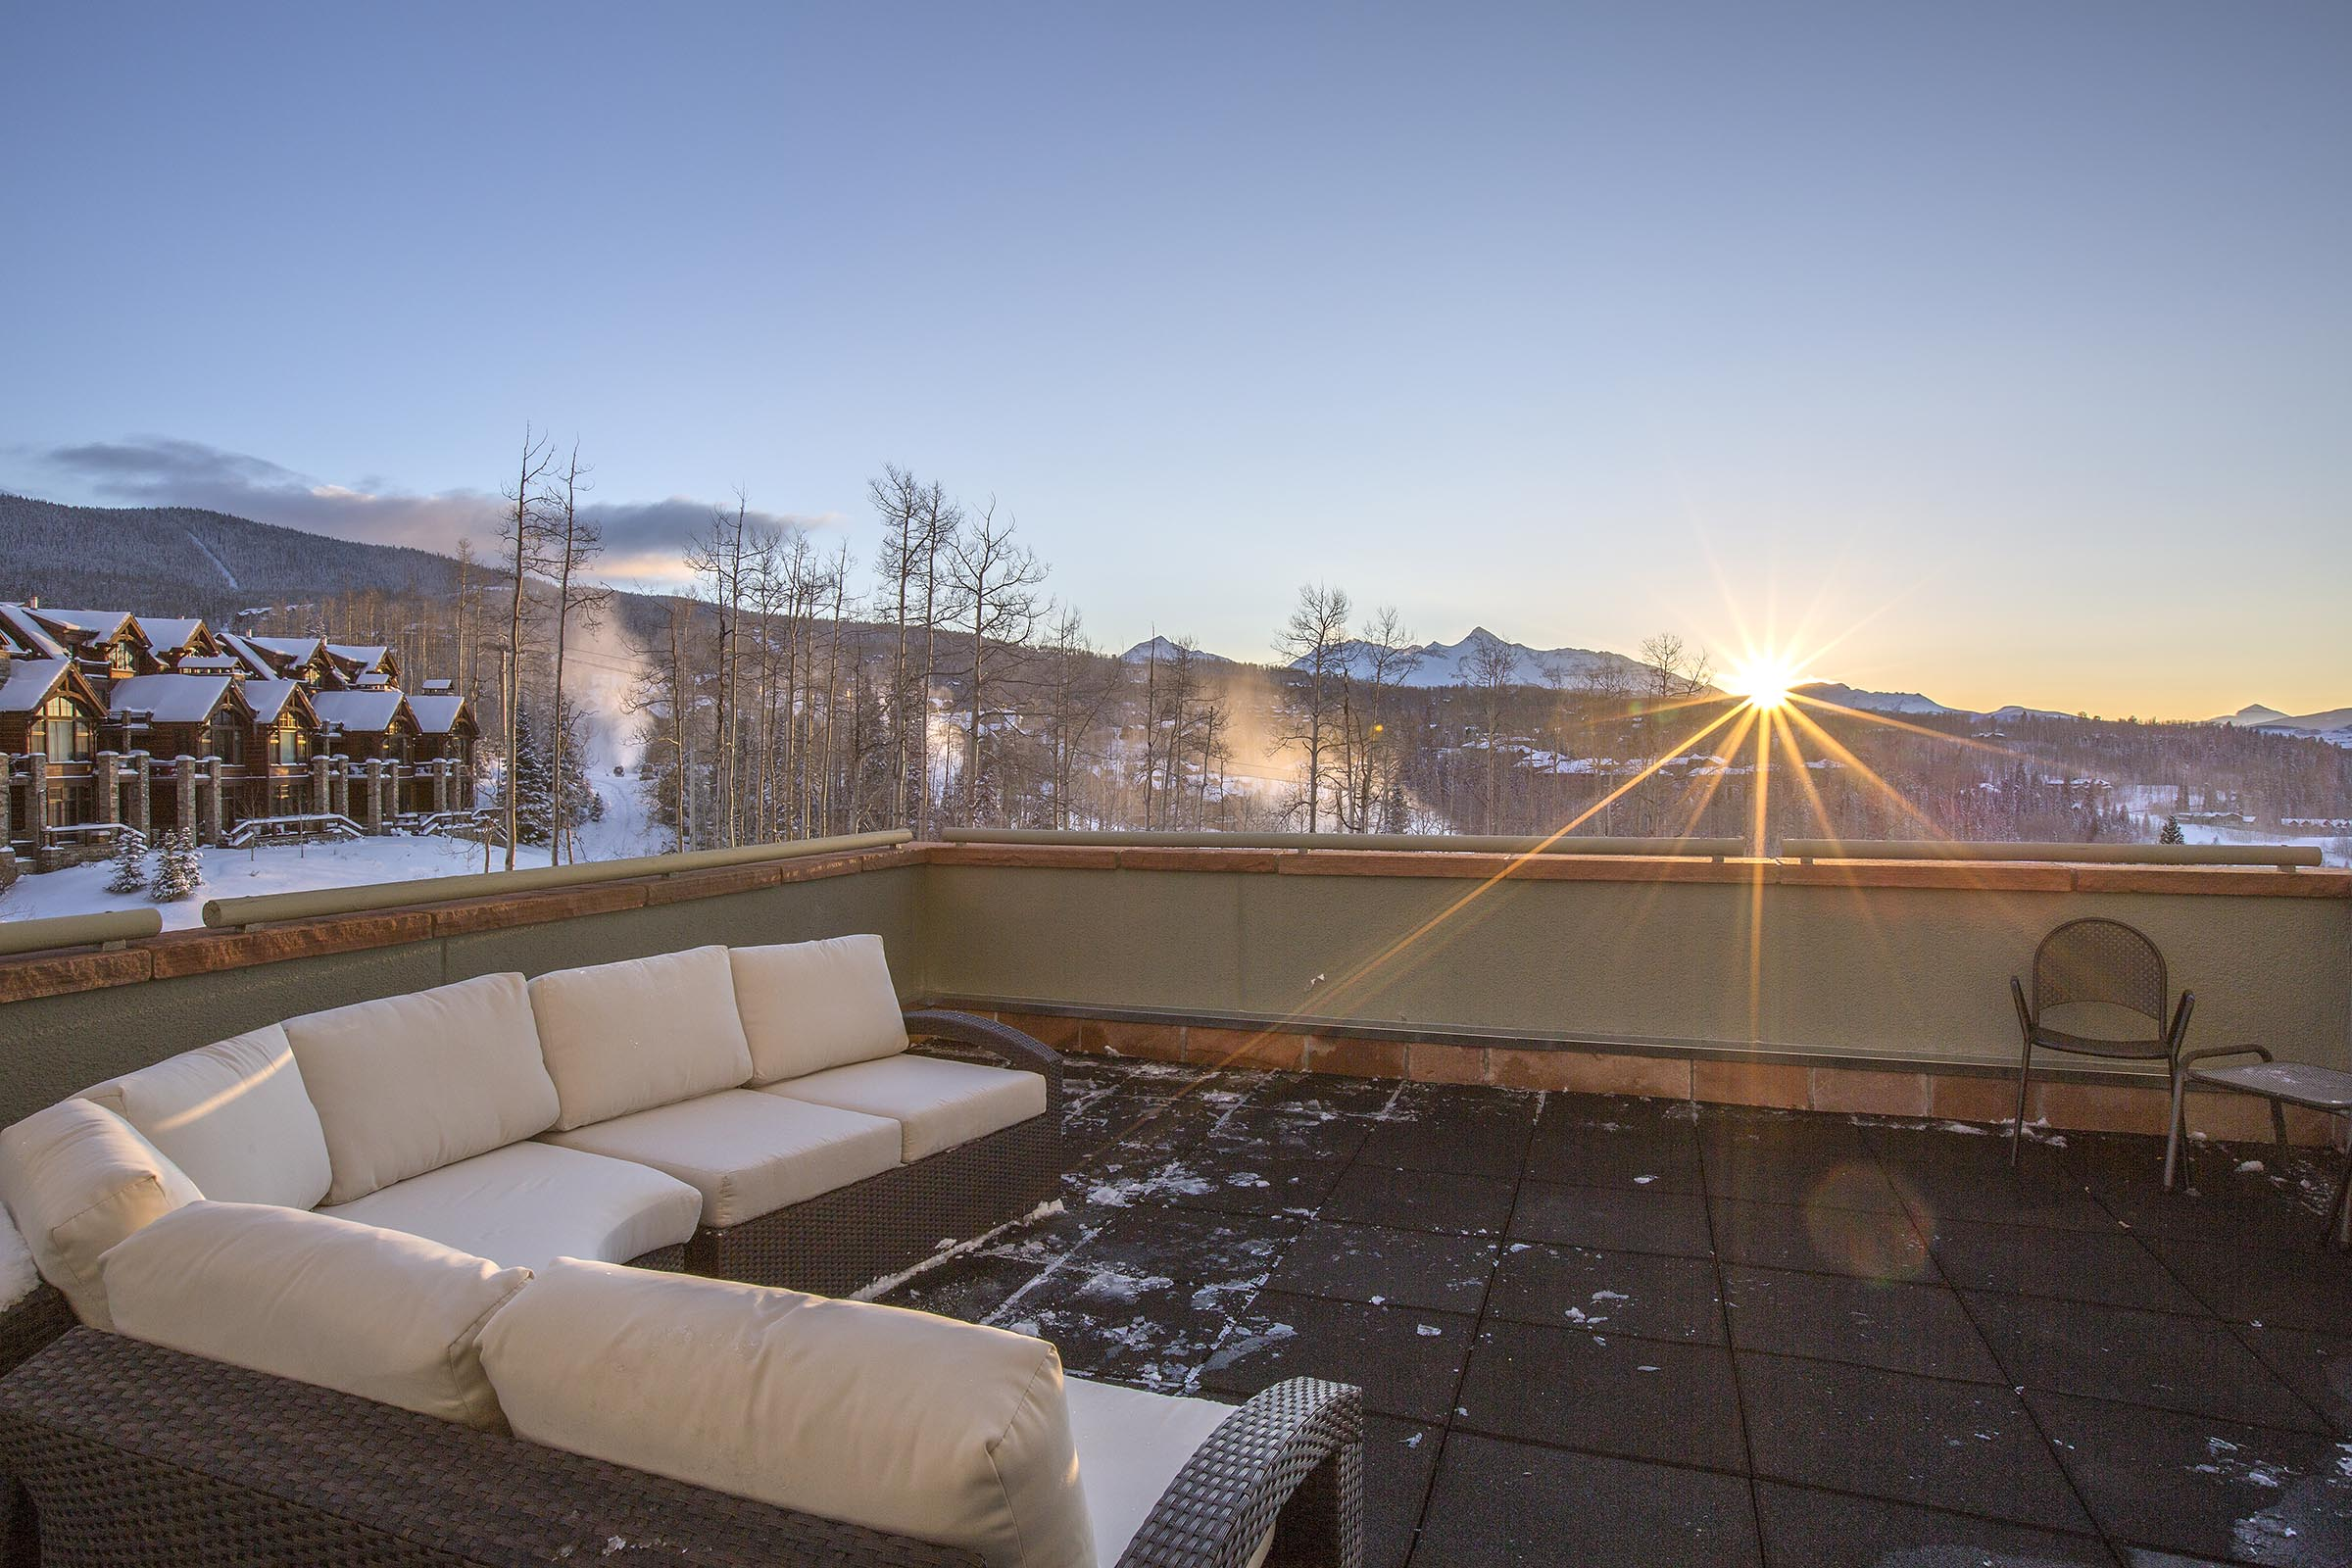 콘도미니엄 용 매매 에 Peaks Resort & Spa Unit 346 136 Country Club Drive, Unit 346 Telluride, 콜로라도, 81435 미국